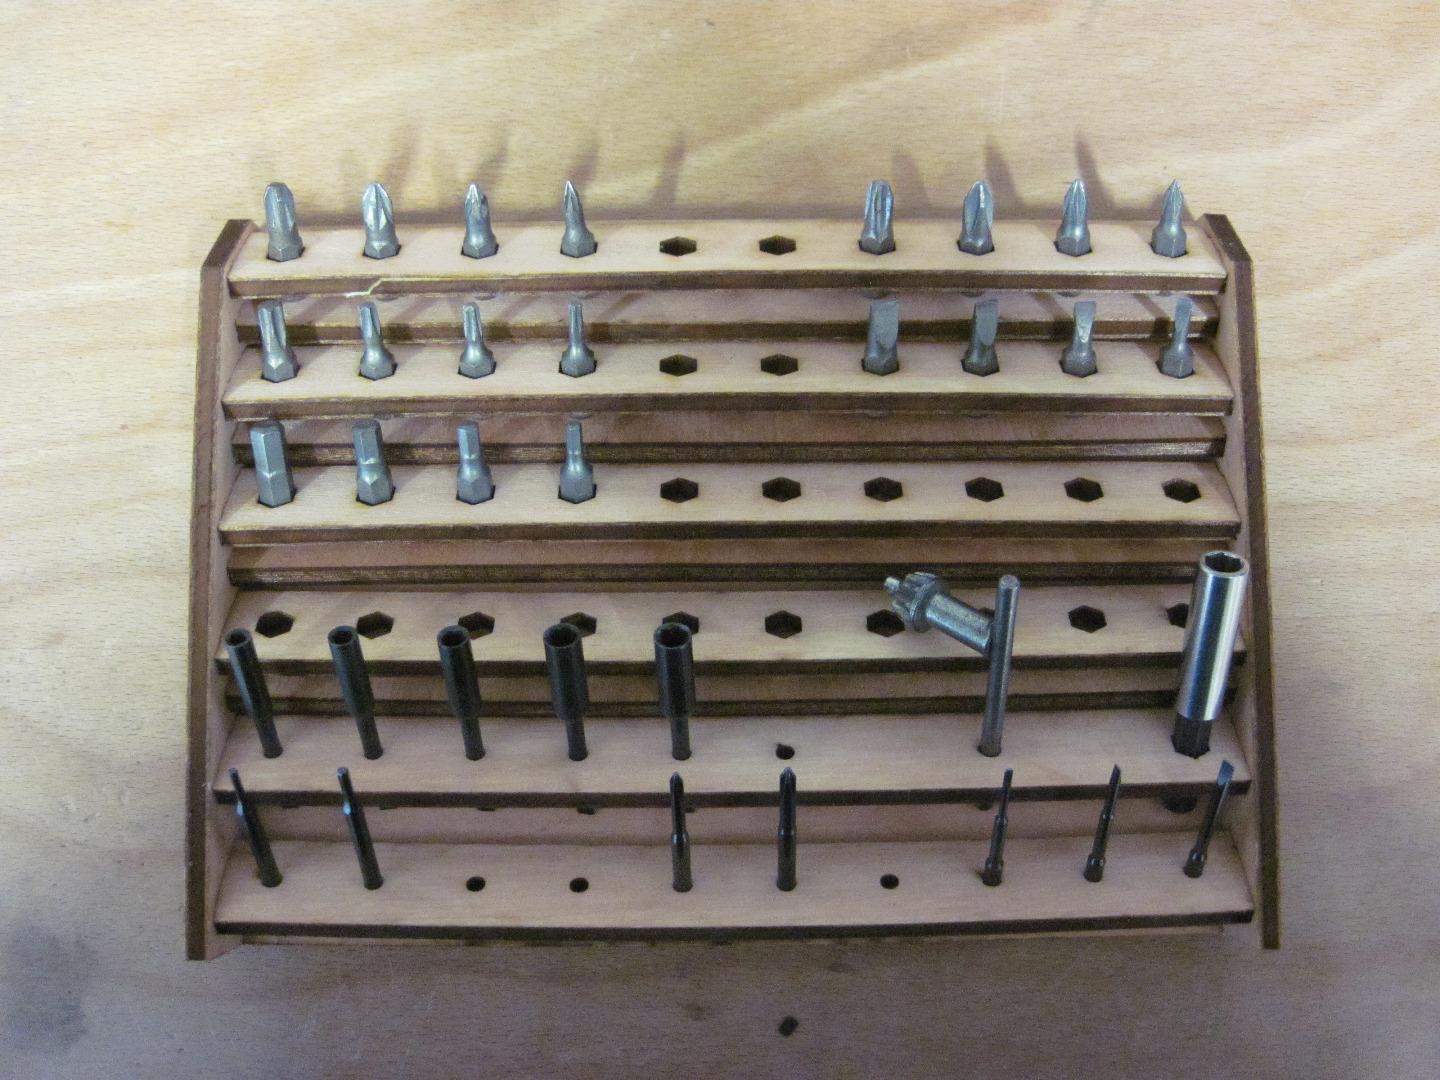 Picture of Toolholder for 3mm Tools and Bits